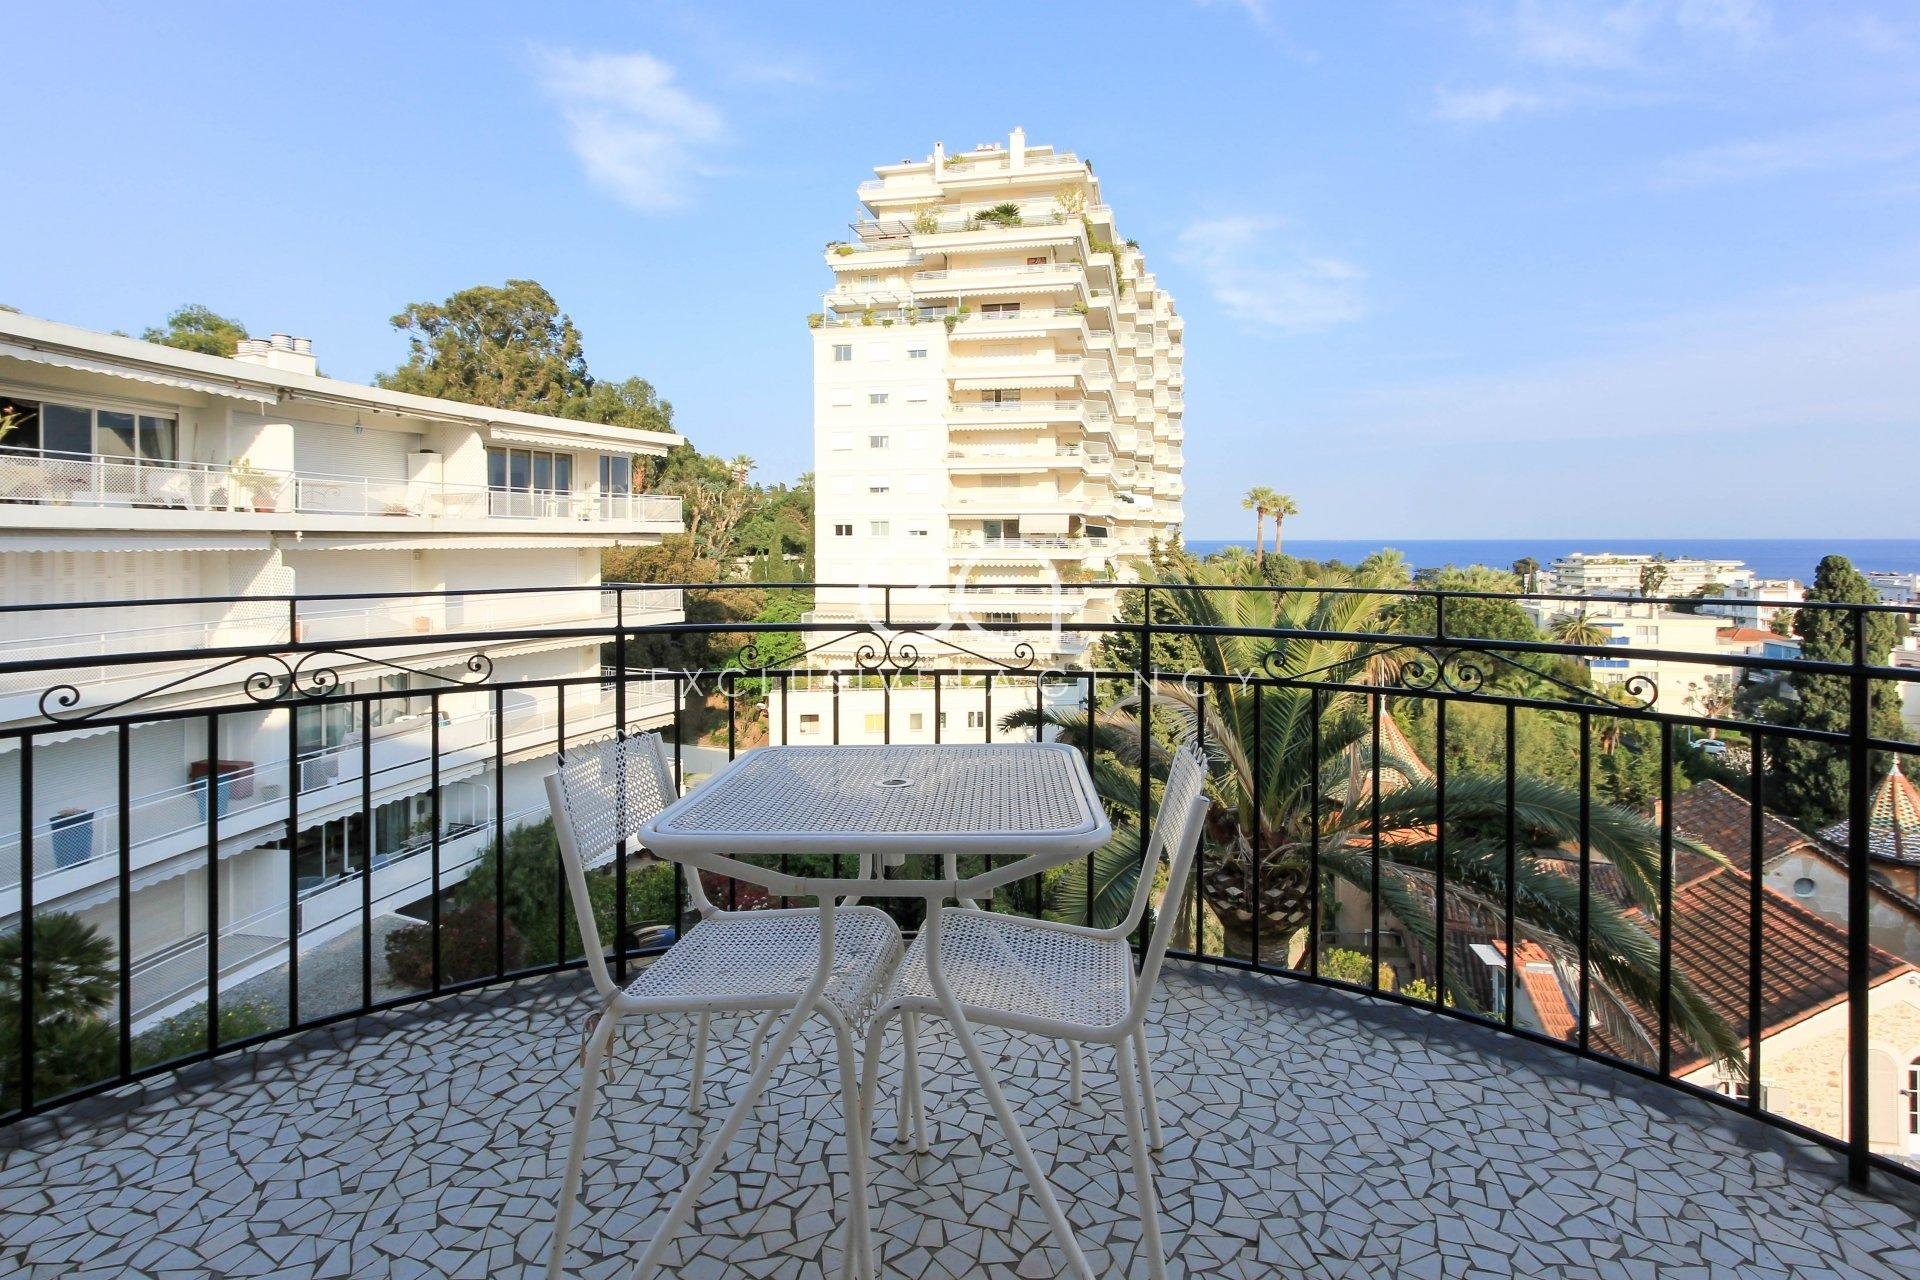 Furnished long term rental in Cannes Basse Californie 2 bedroom apartment of 100m ² with a panoramic sea view.